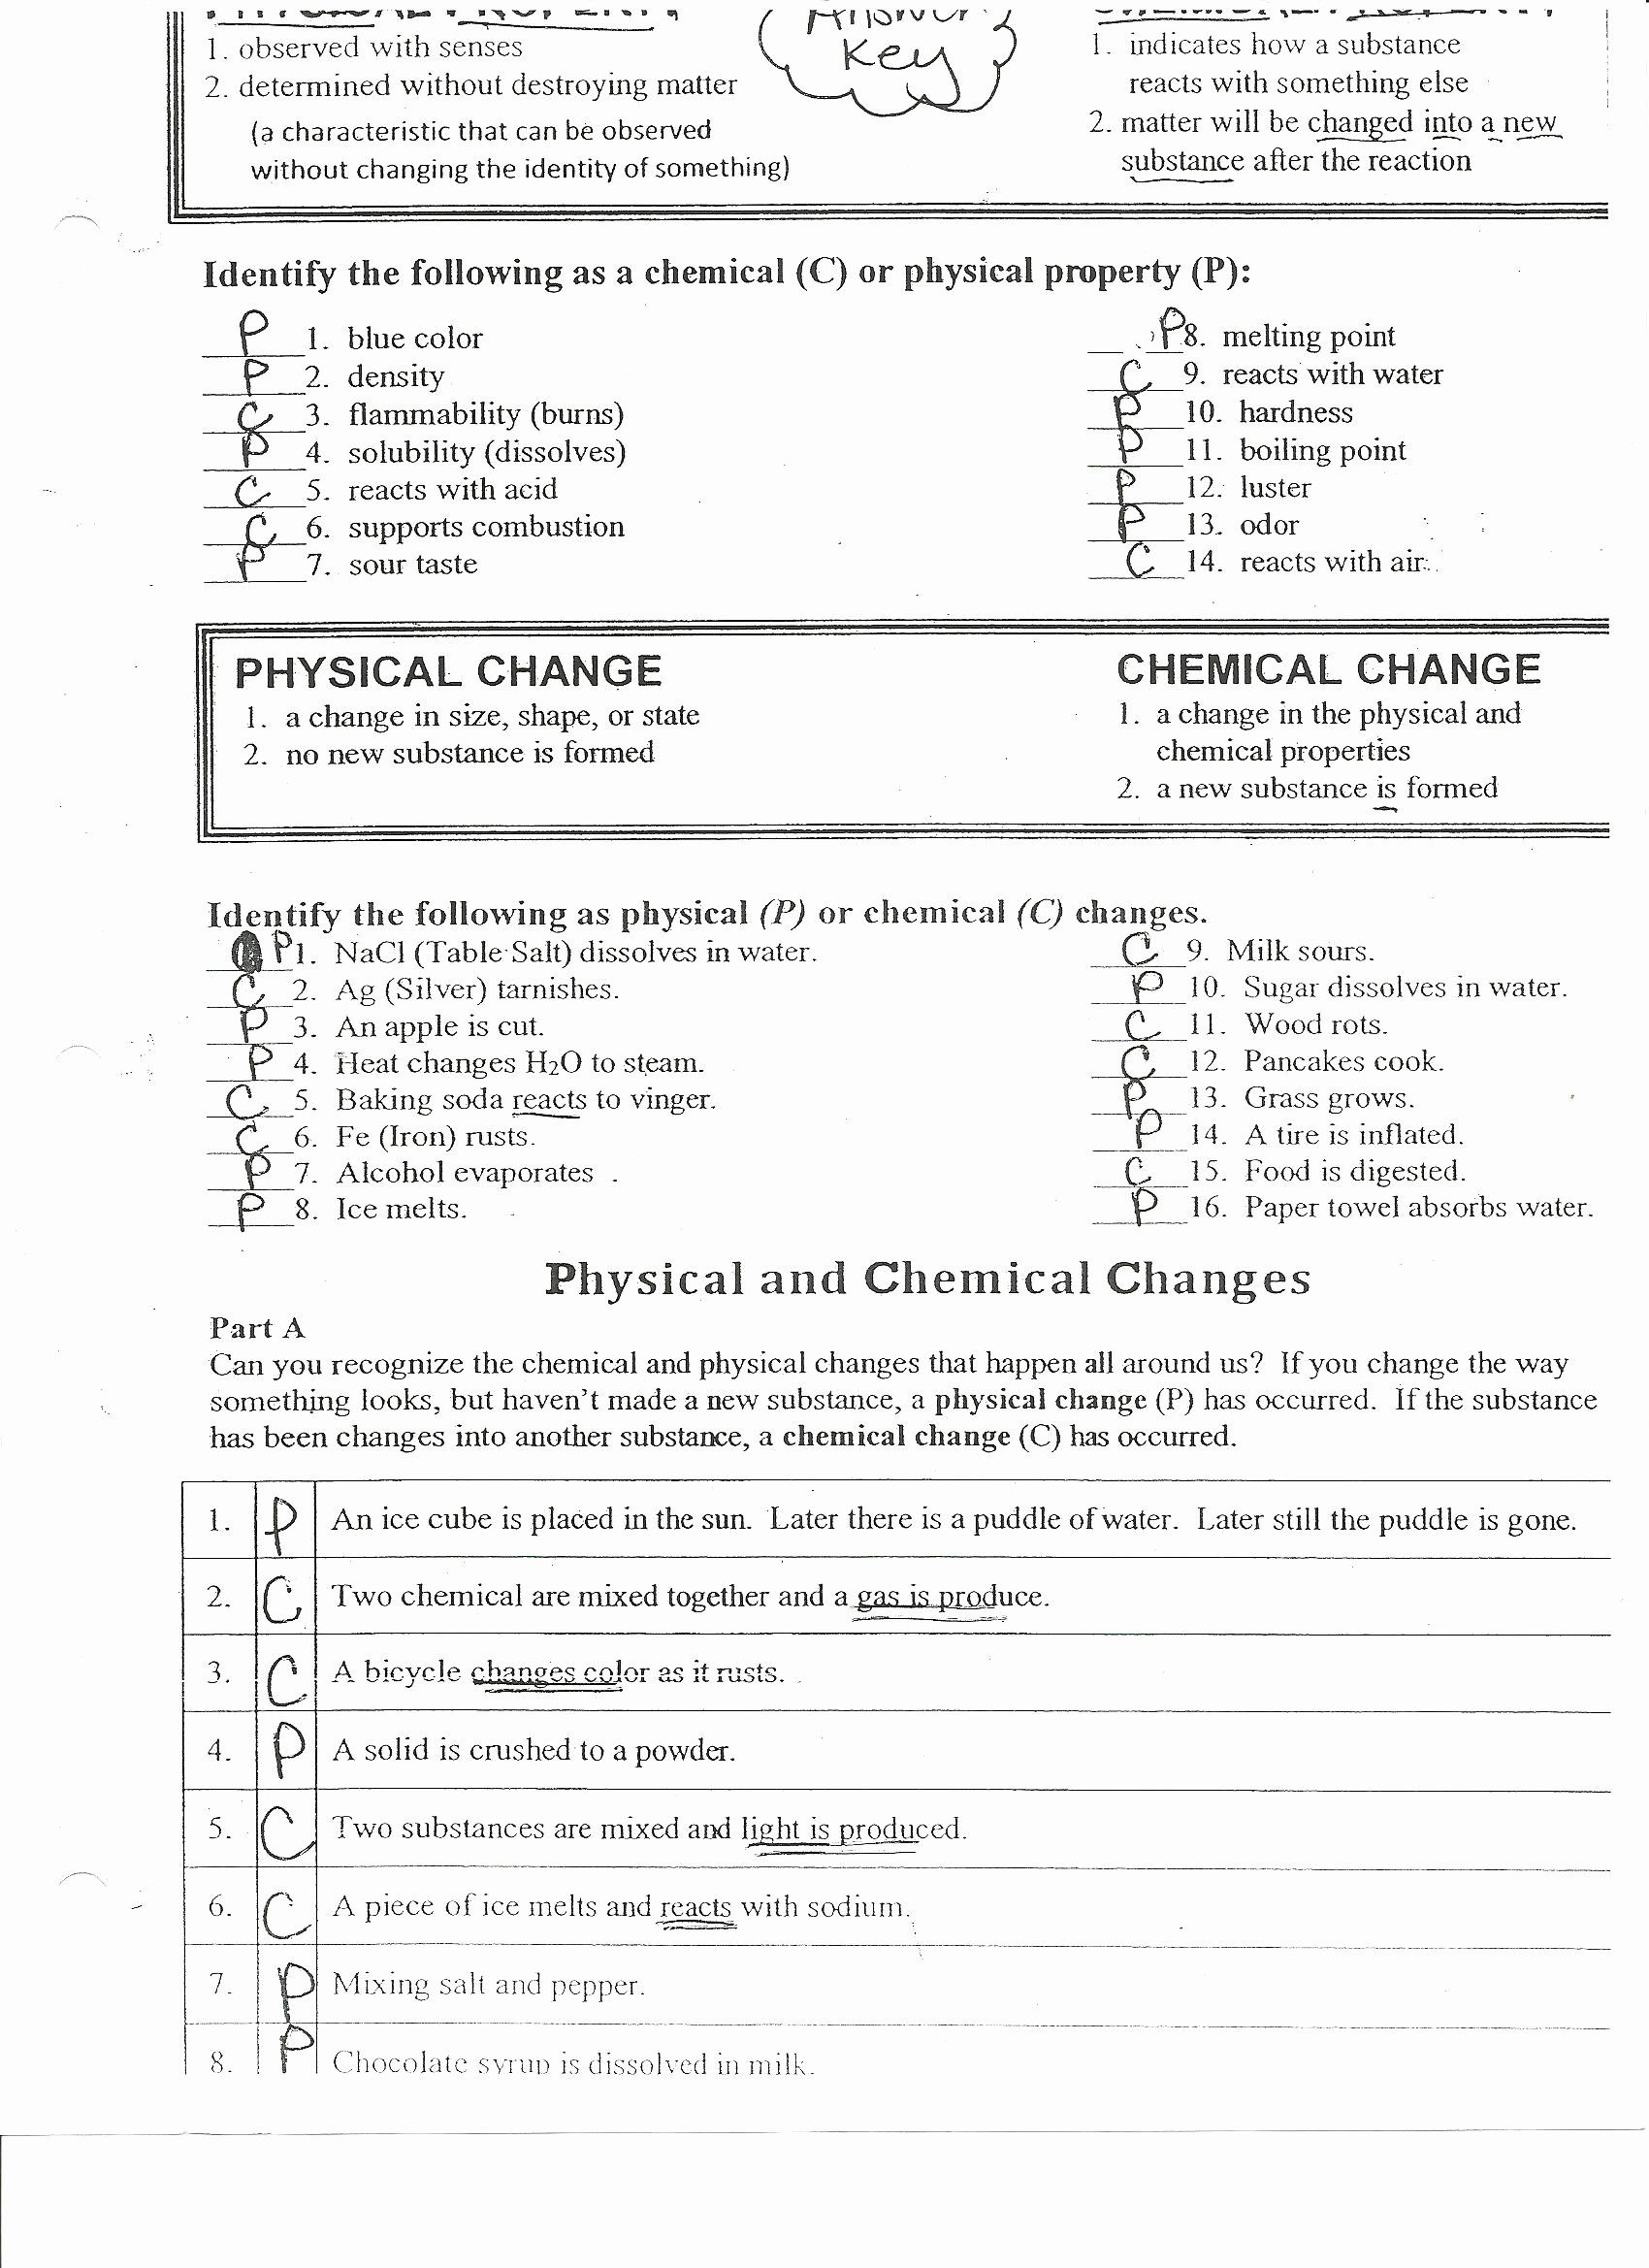 hight resolution of Grade 9 Physical Science Worksheets   Printable Worksheets and Activities  for Teachers